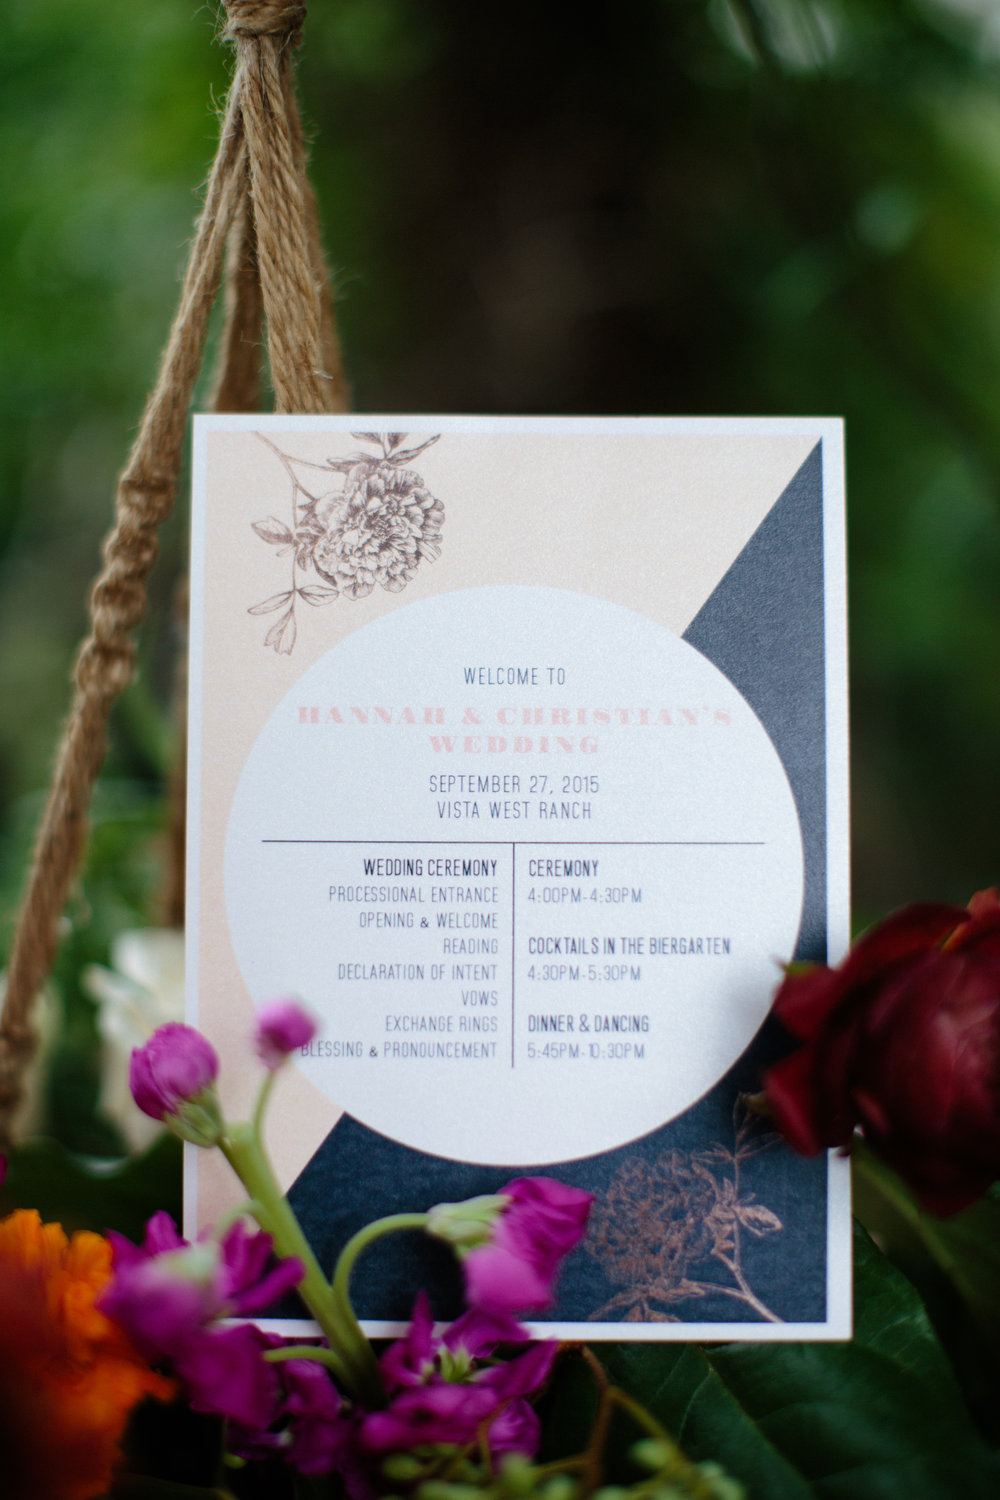 Paige-Newton-Photography-Wedding-Details-Custom-Invite.jpg